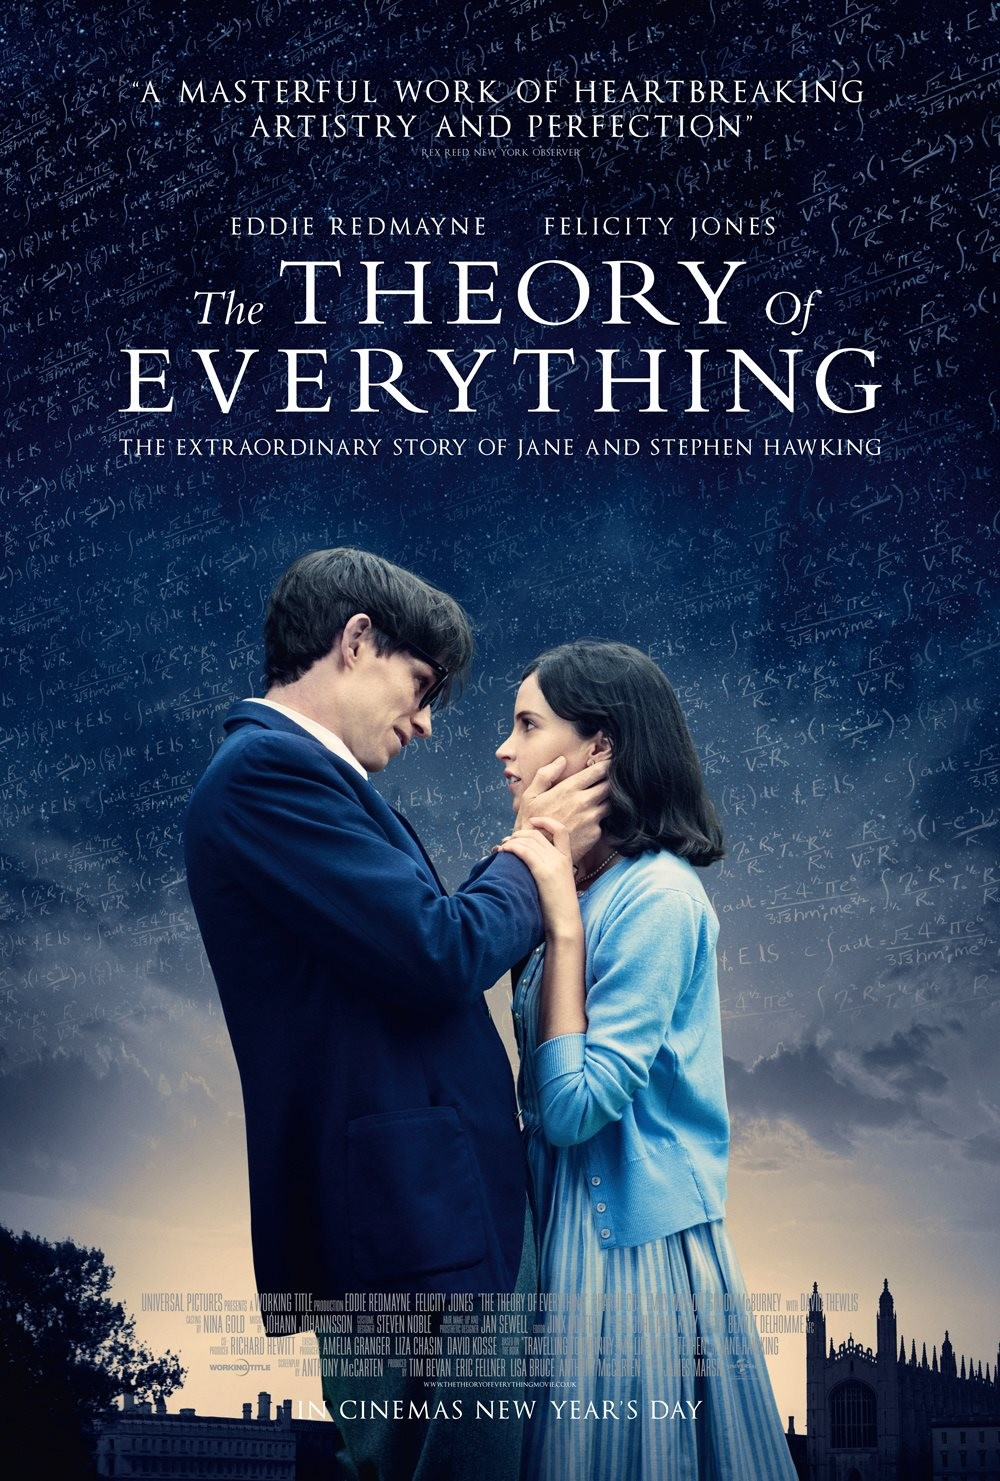 theory-of-everything-poster-2.jpg